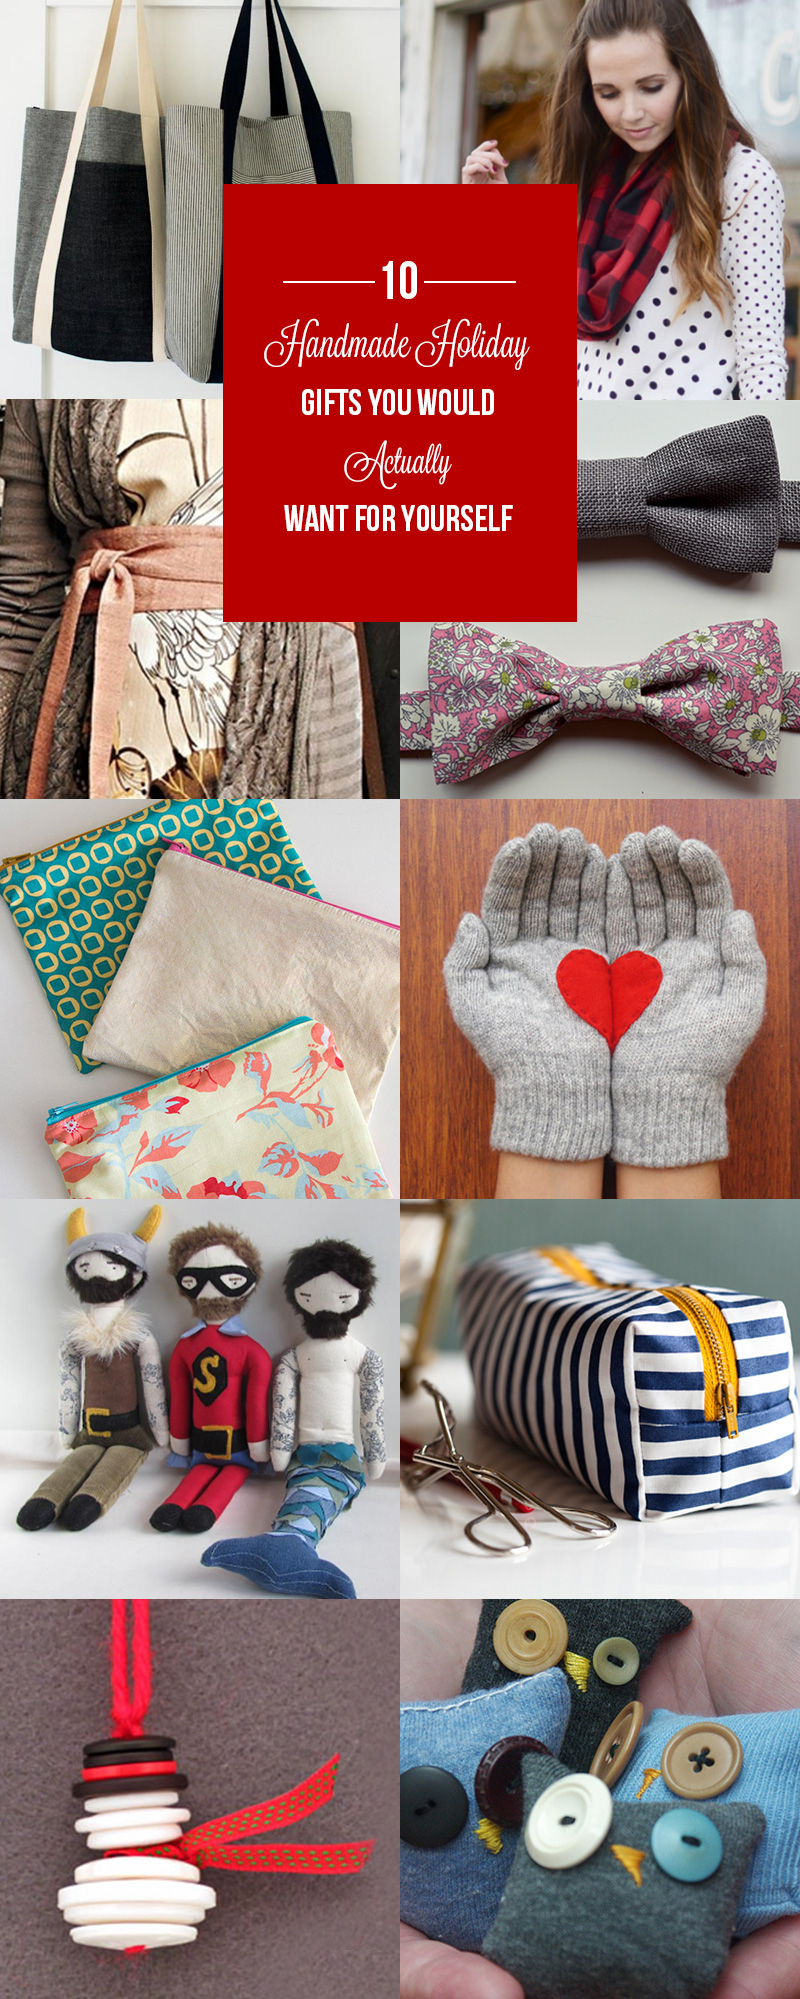 Ten Handmade Holiday DIY Gifts